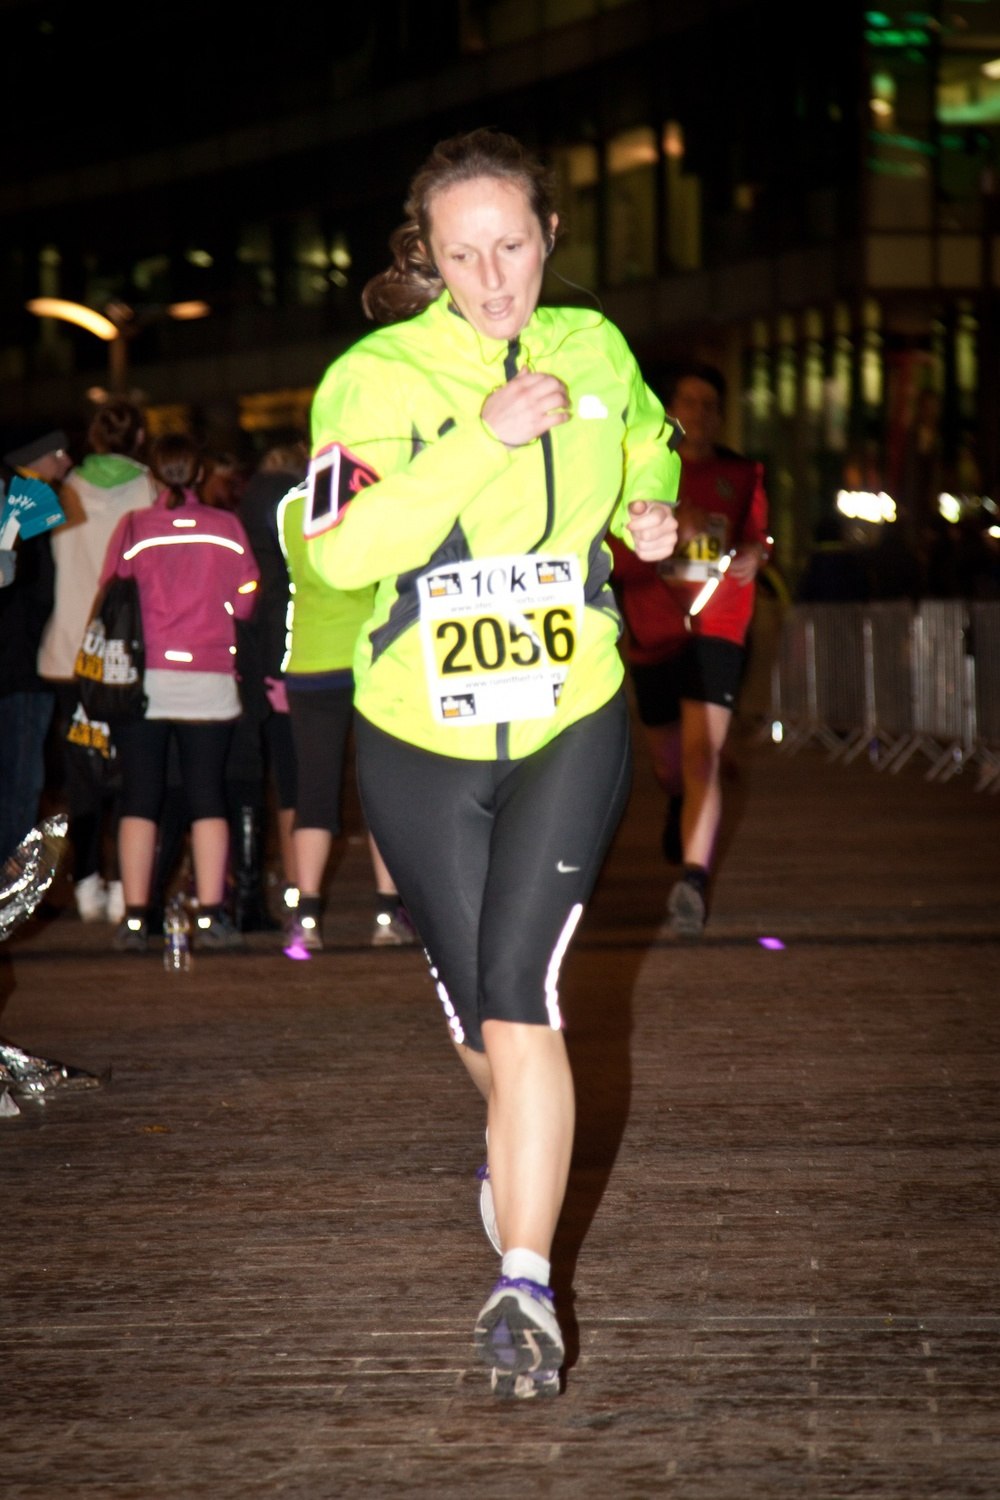 Run Manchester | Supporters Run in Manchester Media City for Mark Pollock | Life Style Sports Run in the dark Manchester | Run in Darkness Manchester Run for Mark Pollock | Event created by Piers White | runinthedark.org